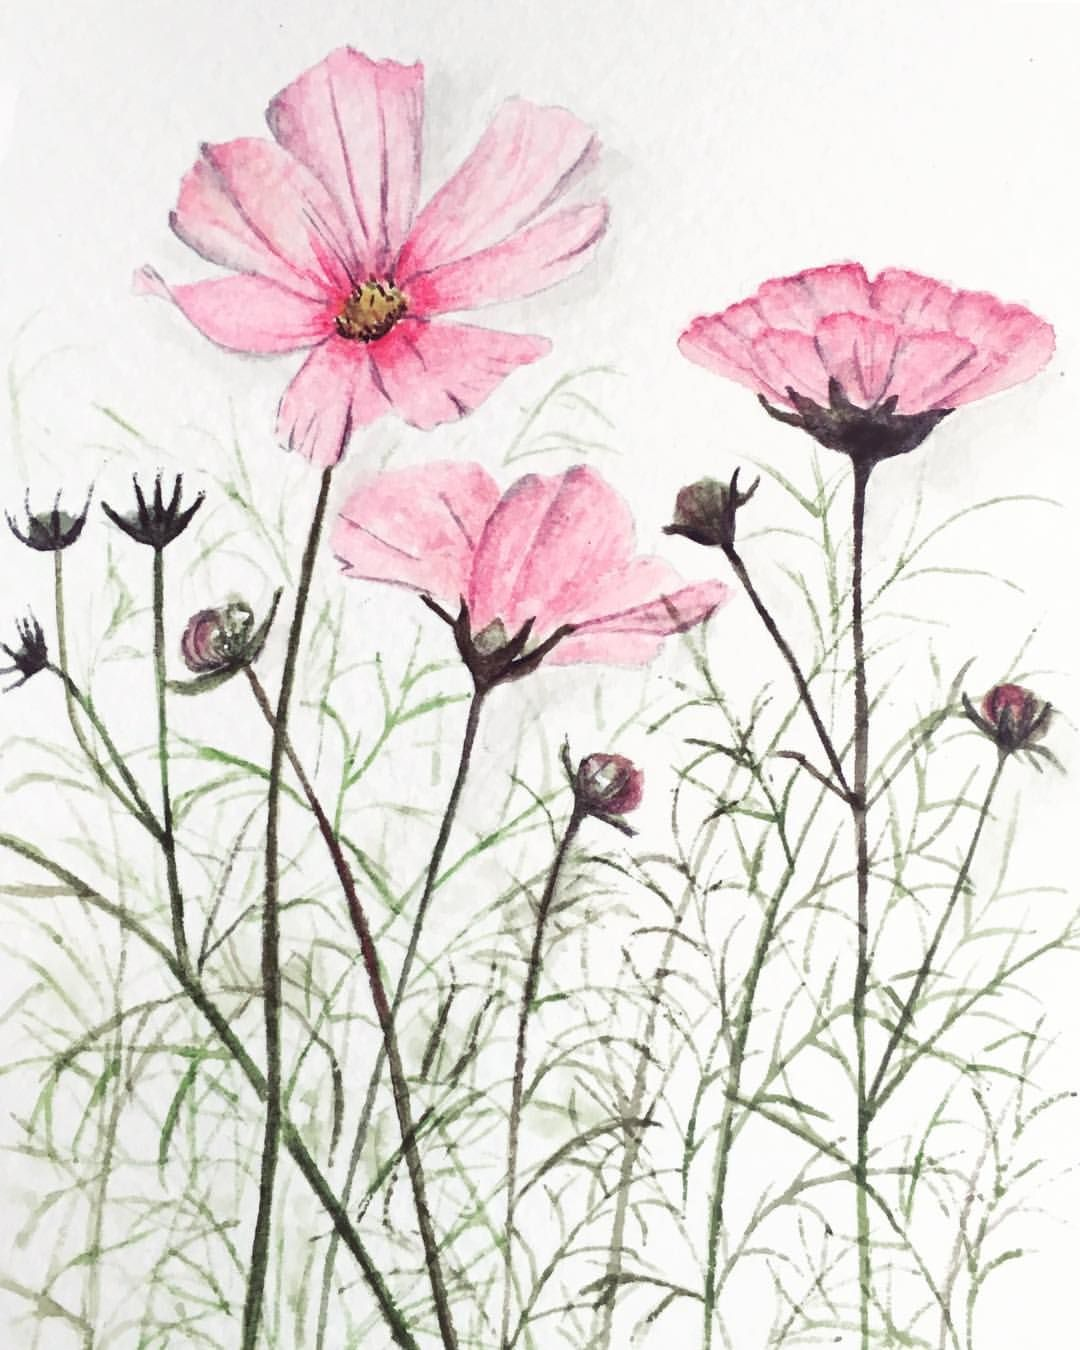 Cosmos Flower Love These Pink Flowers With A Dab Of Lavender In It Comefloralwithus With Aquarryl Craftedbydq N Pink Flowers Flowers Teaching Watercolor